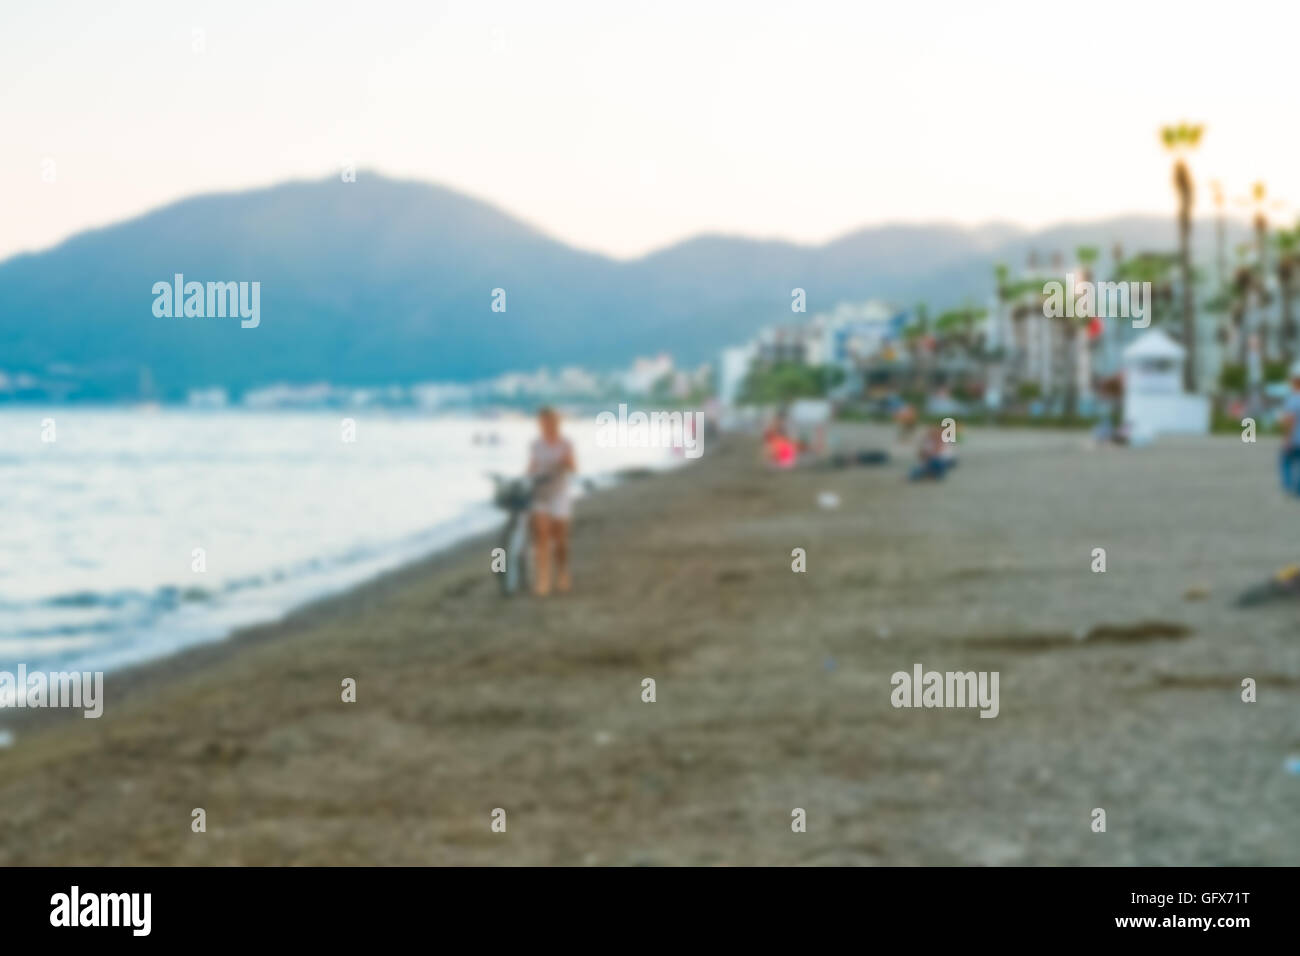 image of blur people on the beach for background usage in Marmaris, Turkey - Stock Image